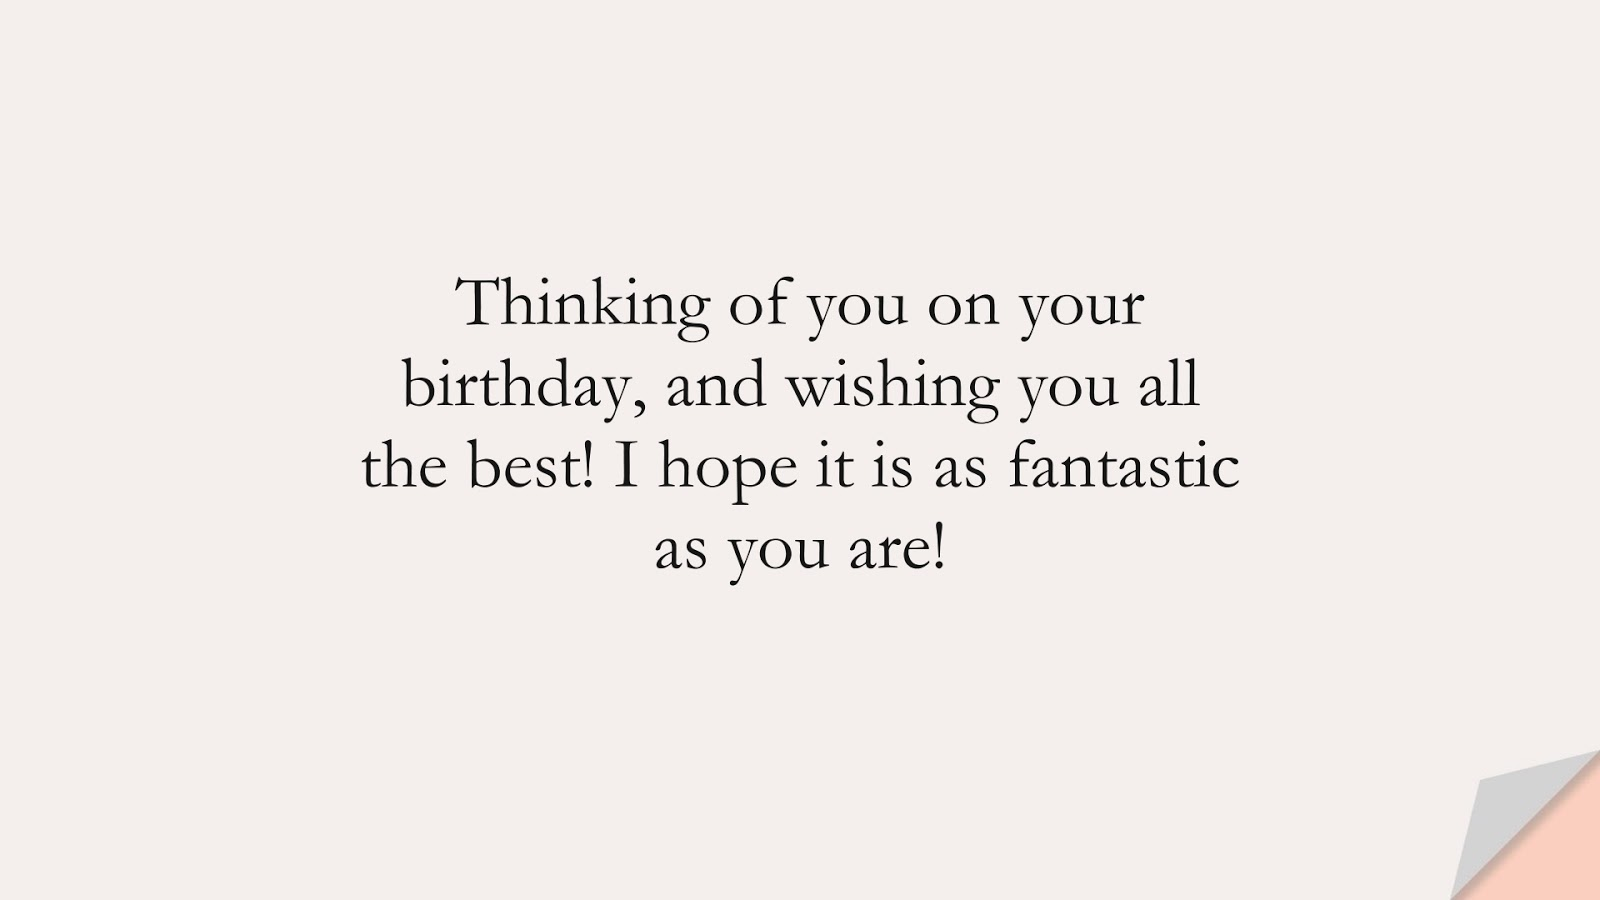 Thinking of you on your birthday, and wishing you all the best! I hope it is as fantastic as you are!FALSE